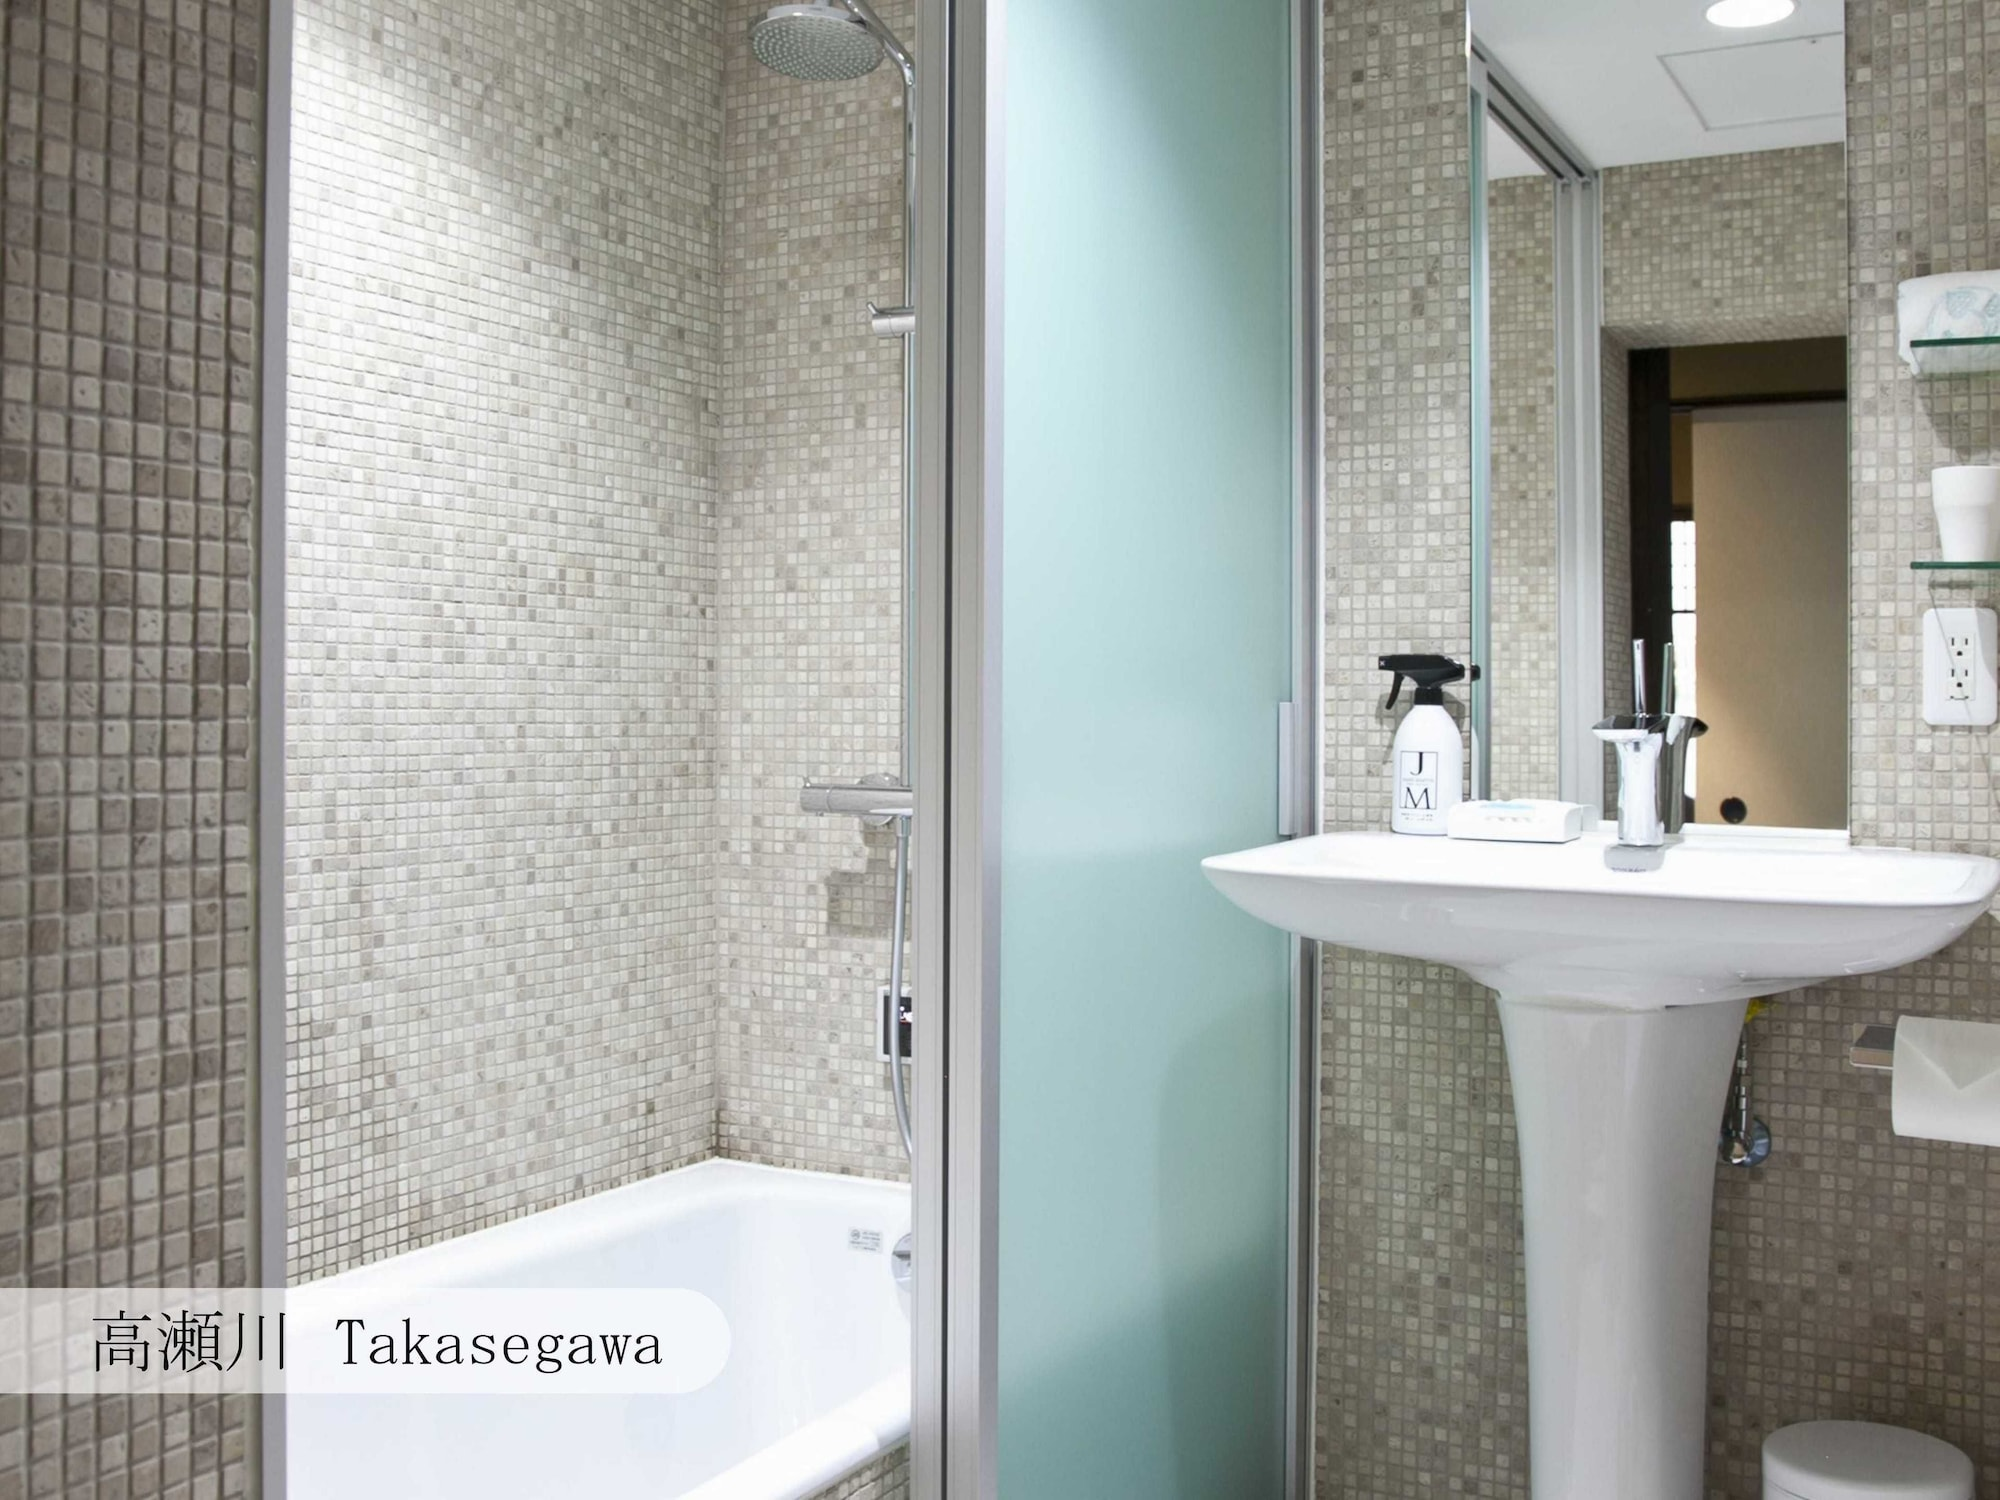 Takasegawa Townhouse (Check-in by 6 PM)